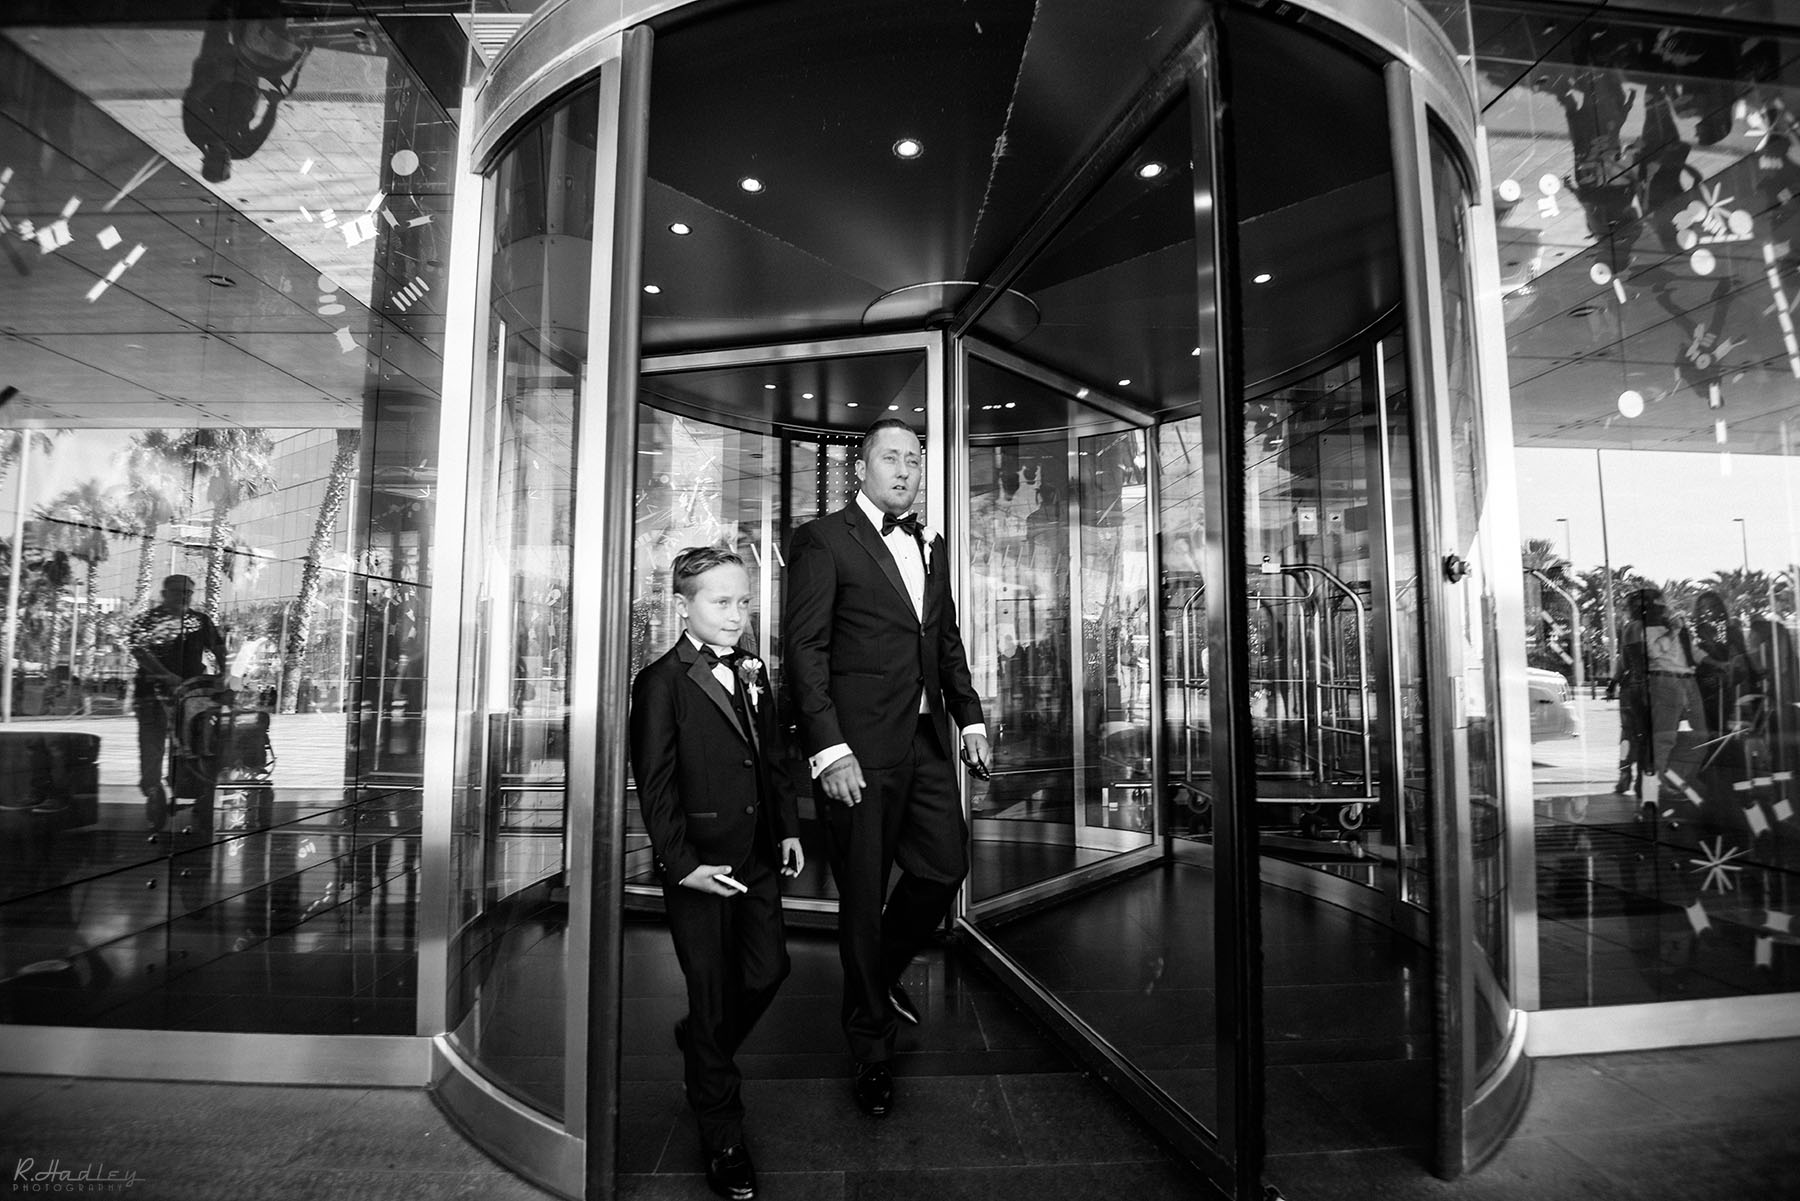 Wedding at the W hotel in Barcelona, Spain. Father and son leaving the hotel.